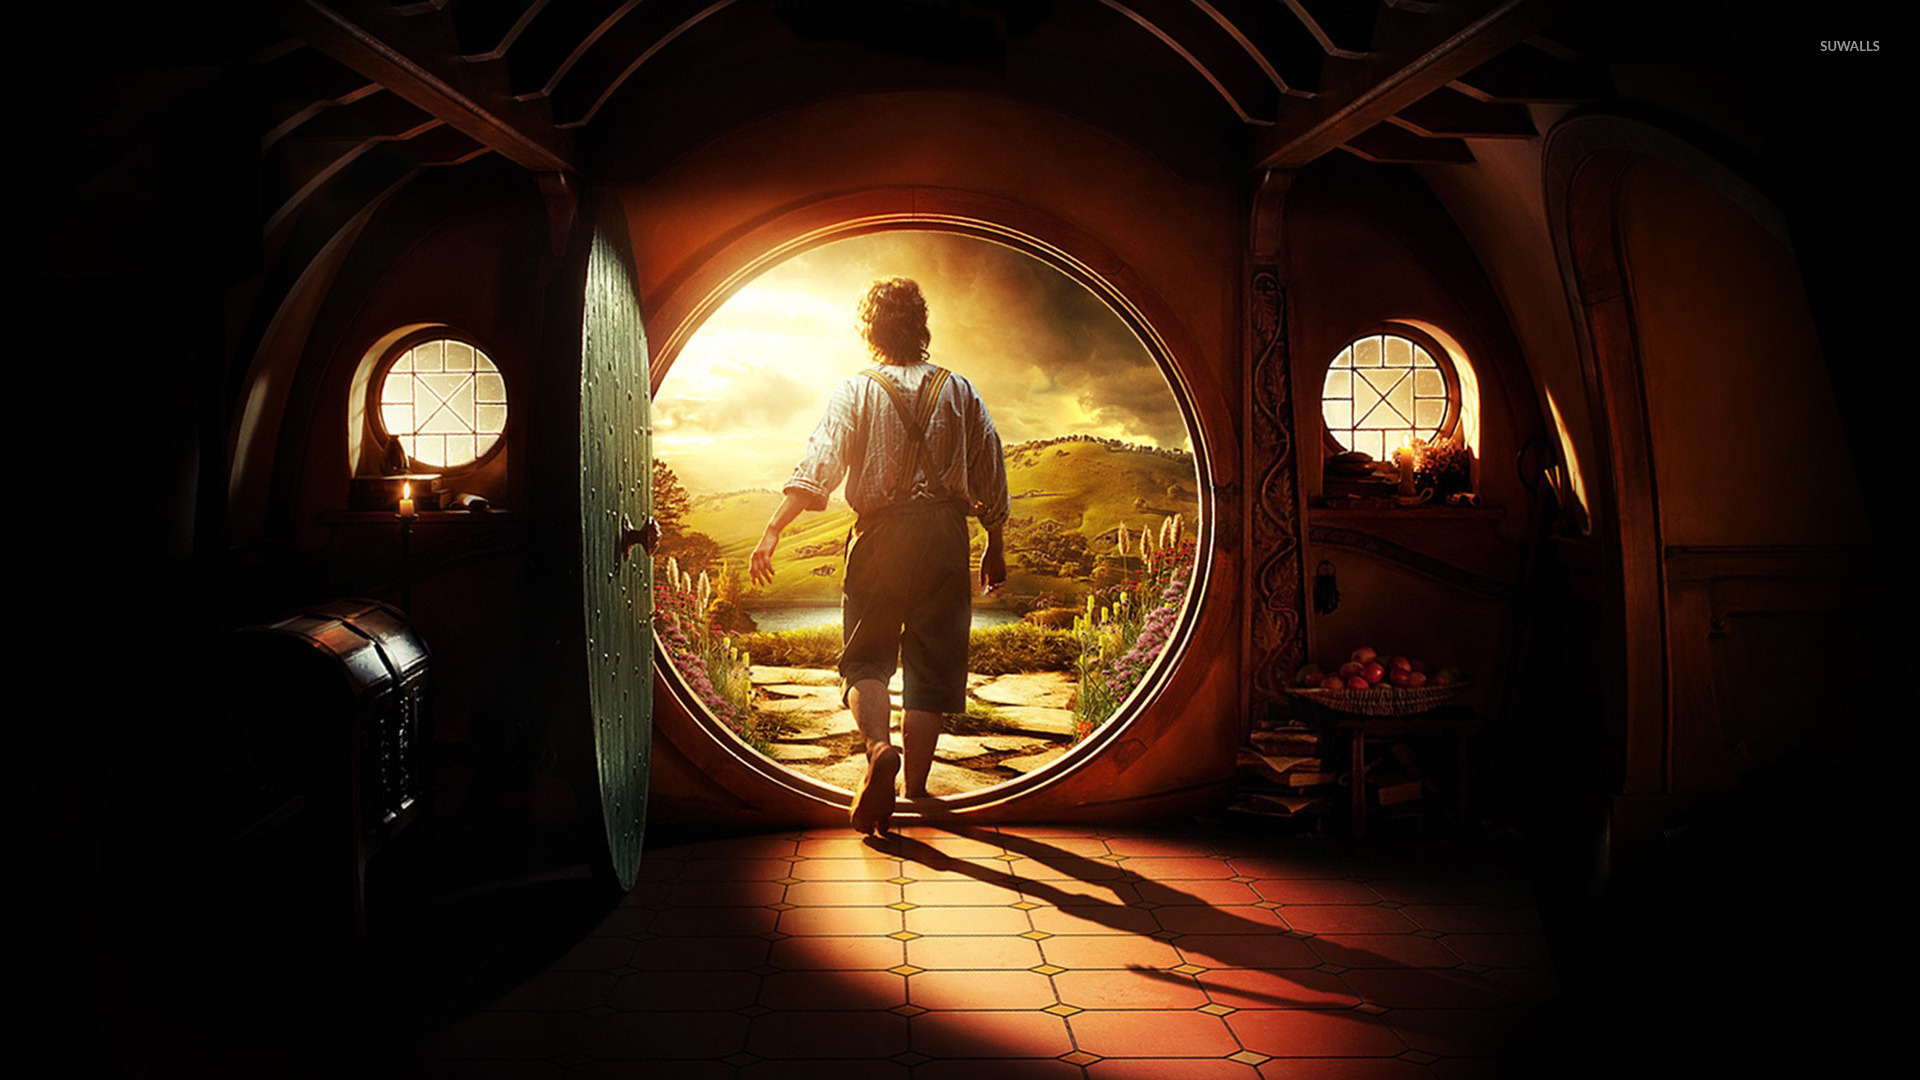 The Hobbit wallpaper   Movie wallpapers   11462 1920x1080